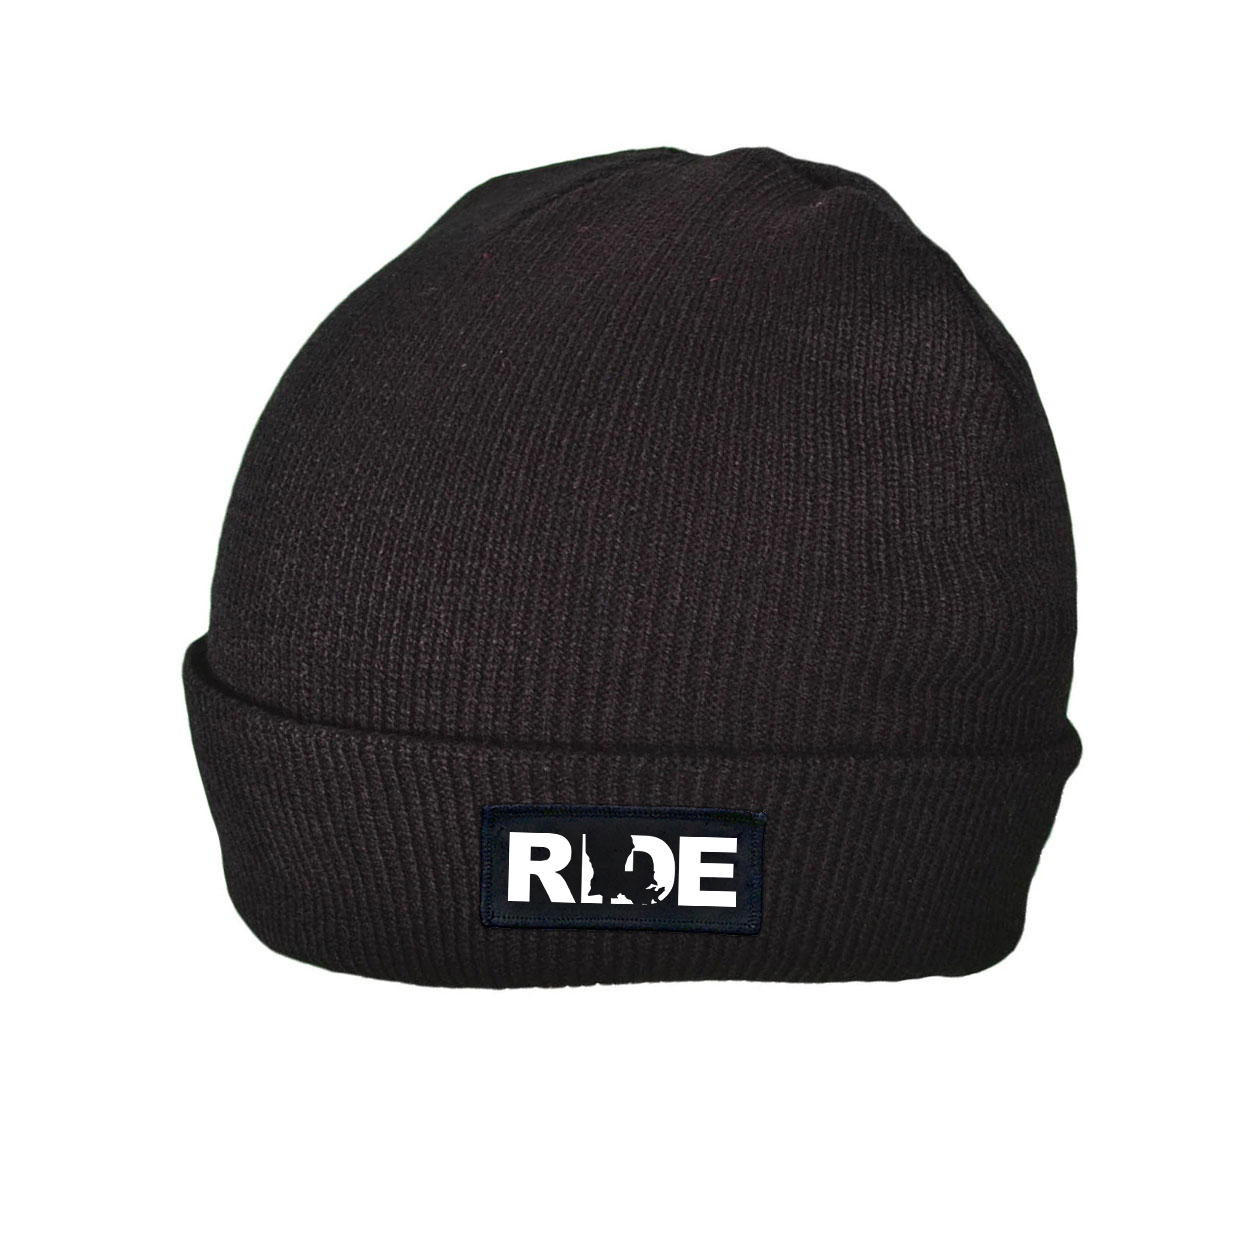 Ride Louisiana Night Out Woven Patch Roll Up Skully Beanie Black (White Logo)